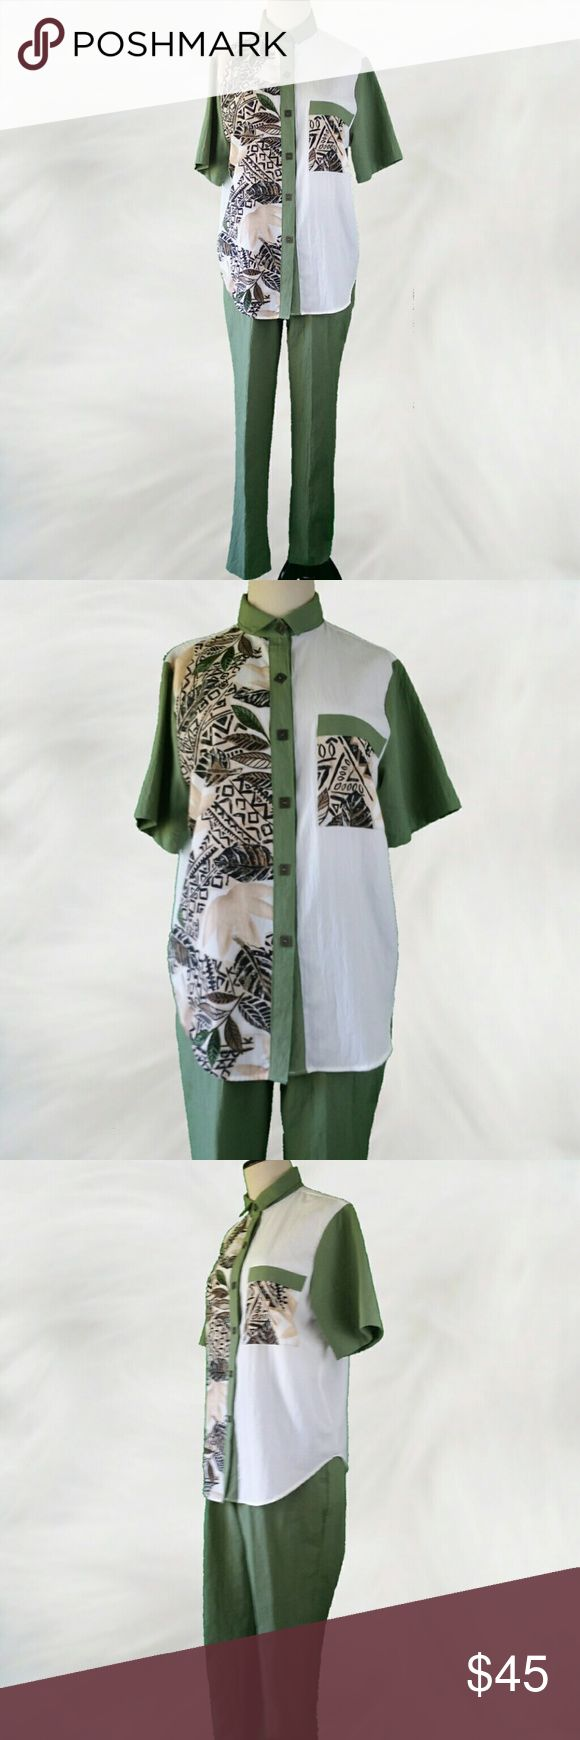 Vintage Designer Olive Green & White Pant Suit This crinkle polyester material makes the perfect travel wear. Olive Green elastic waist pants are paired with a button up top with one chest pocket. Printed with a tan and black leaf pattern with olive accents on a white background. Olive accents the sleeves, collar and button placard.  Square detailed brass tone buttons add the finishing touch.  In excellent vintage condition. Designer Cristin Stevens 100% polyester. Top labeled size small…